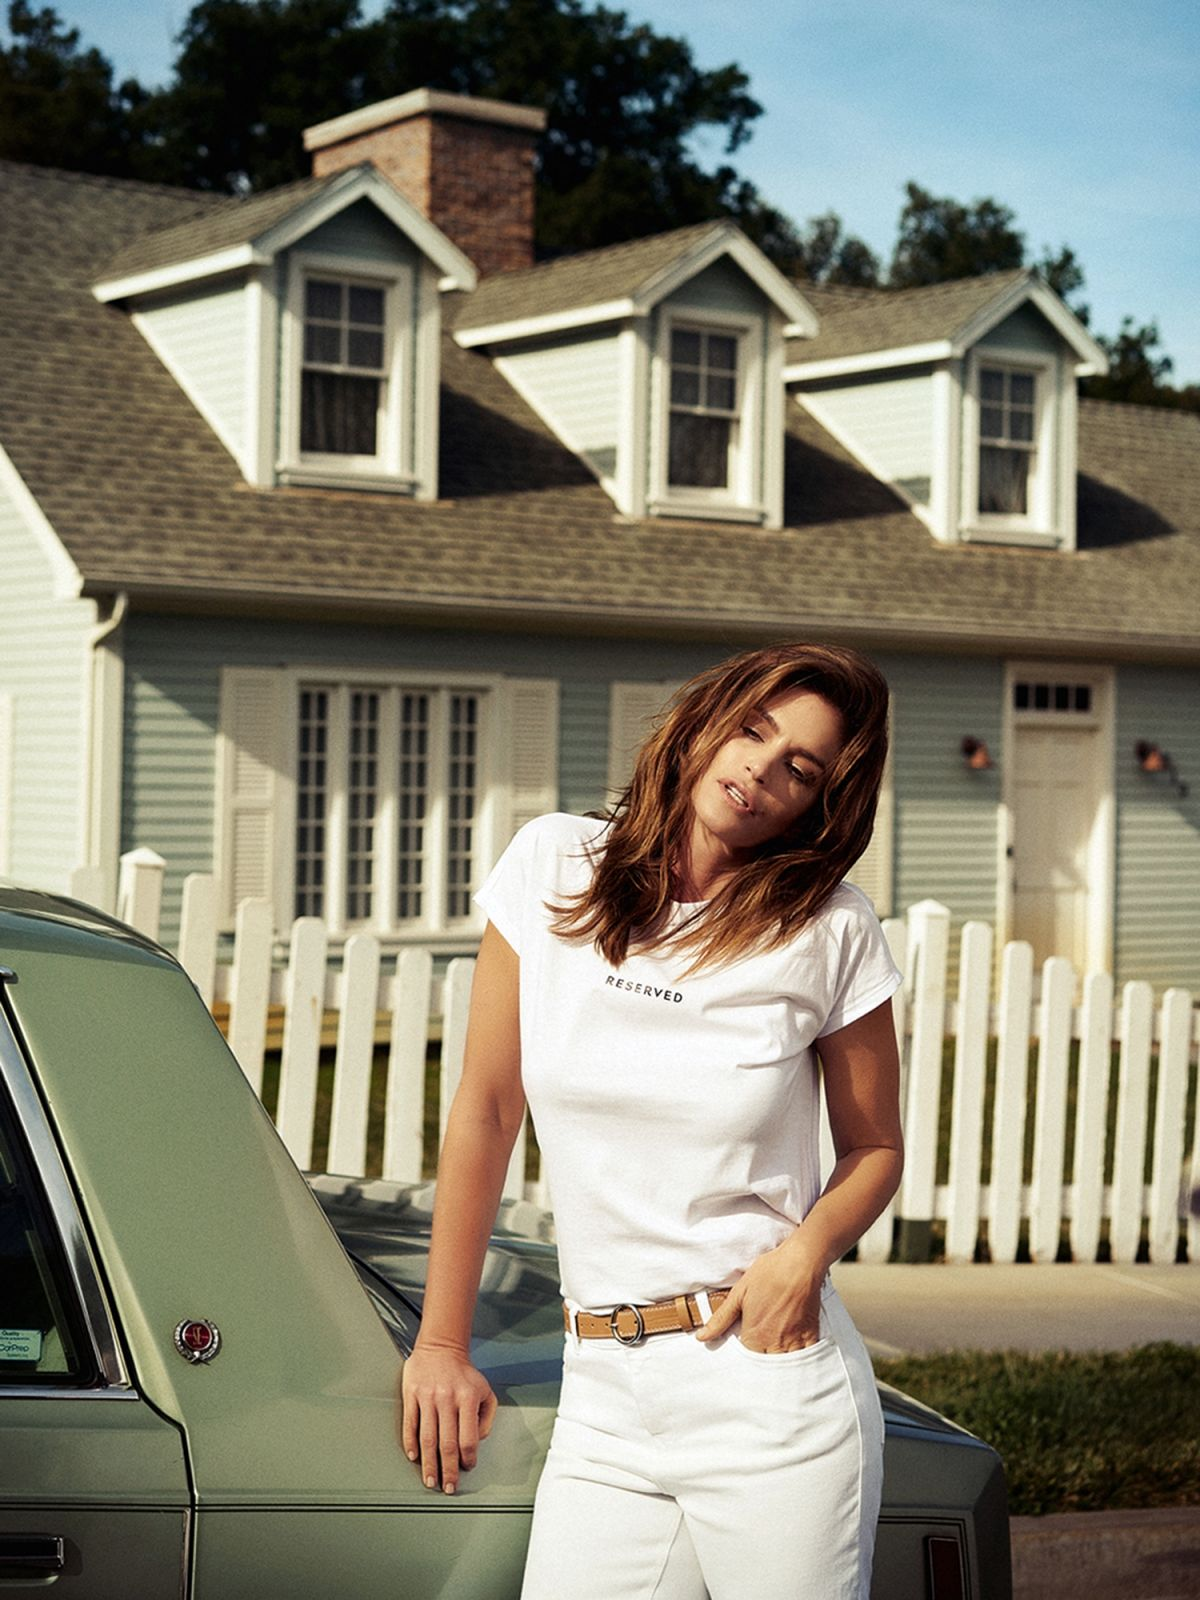 Spring reserved summer campaign photos